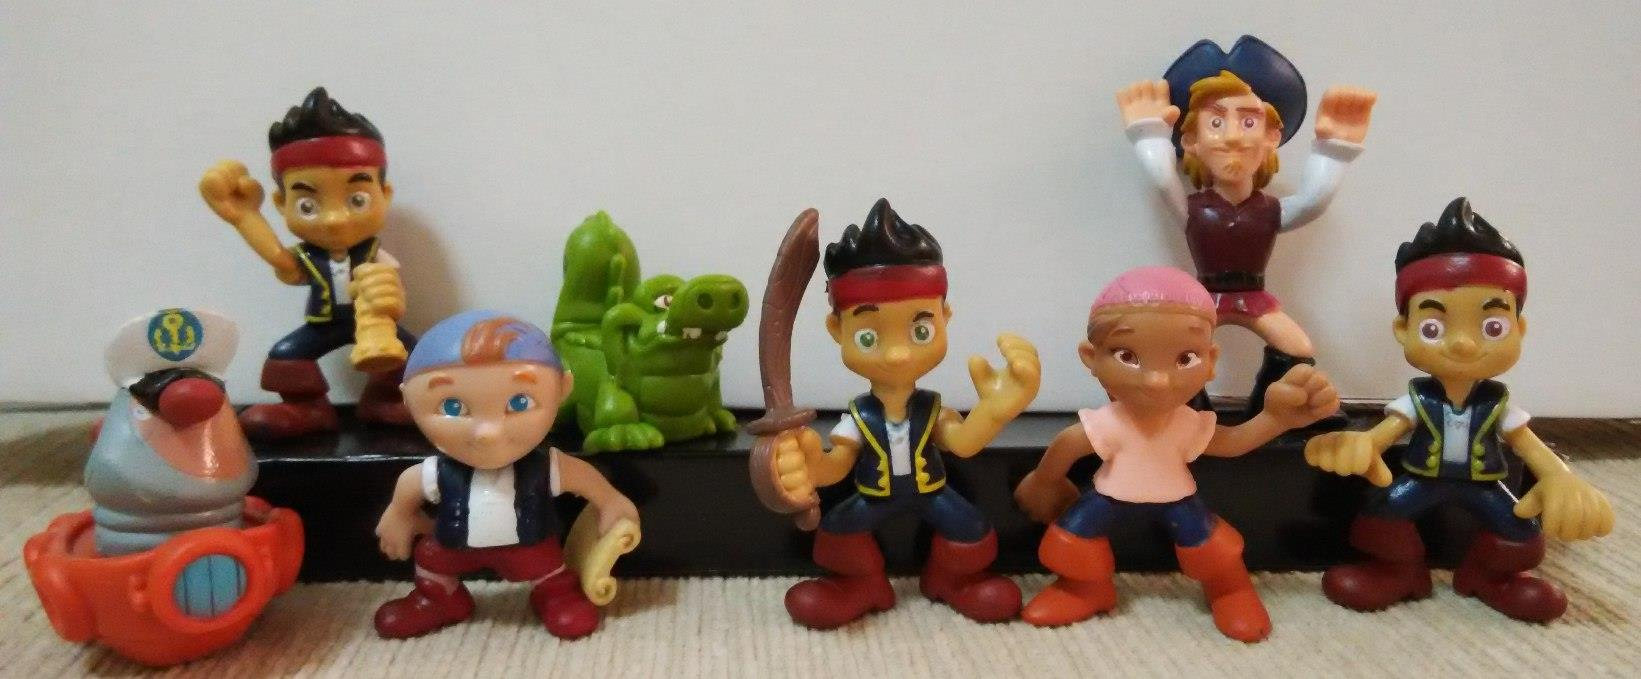 Jake Pirates and the Never Ending Toy Figures - JPCT03